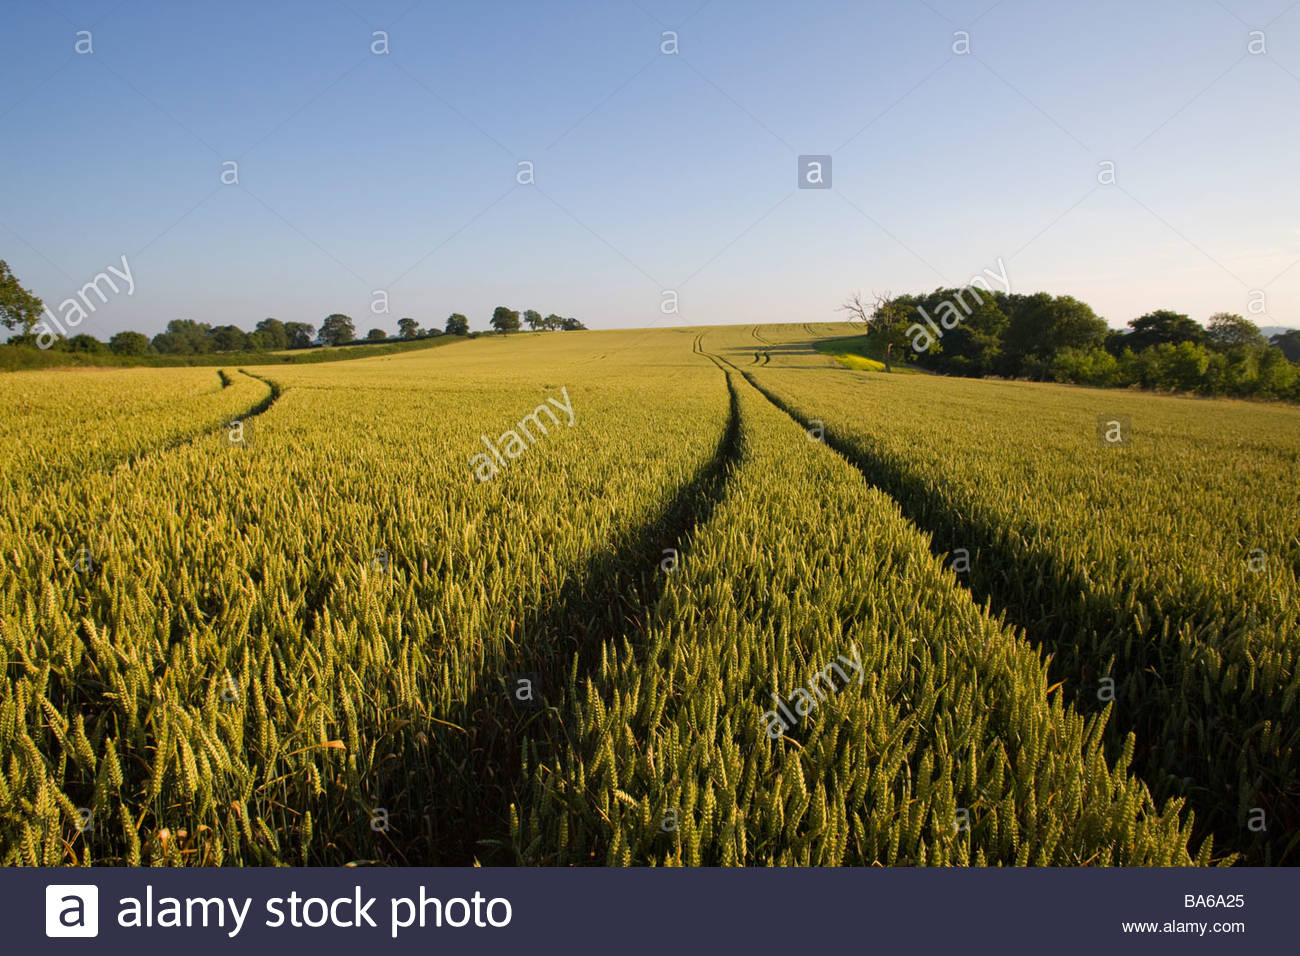 Tracks in wheat field - Stock Image